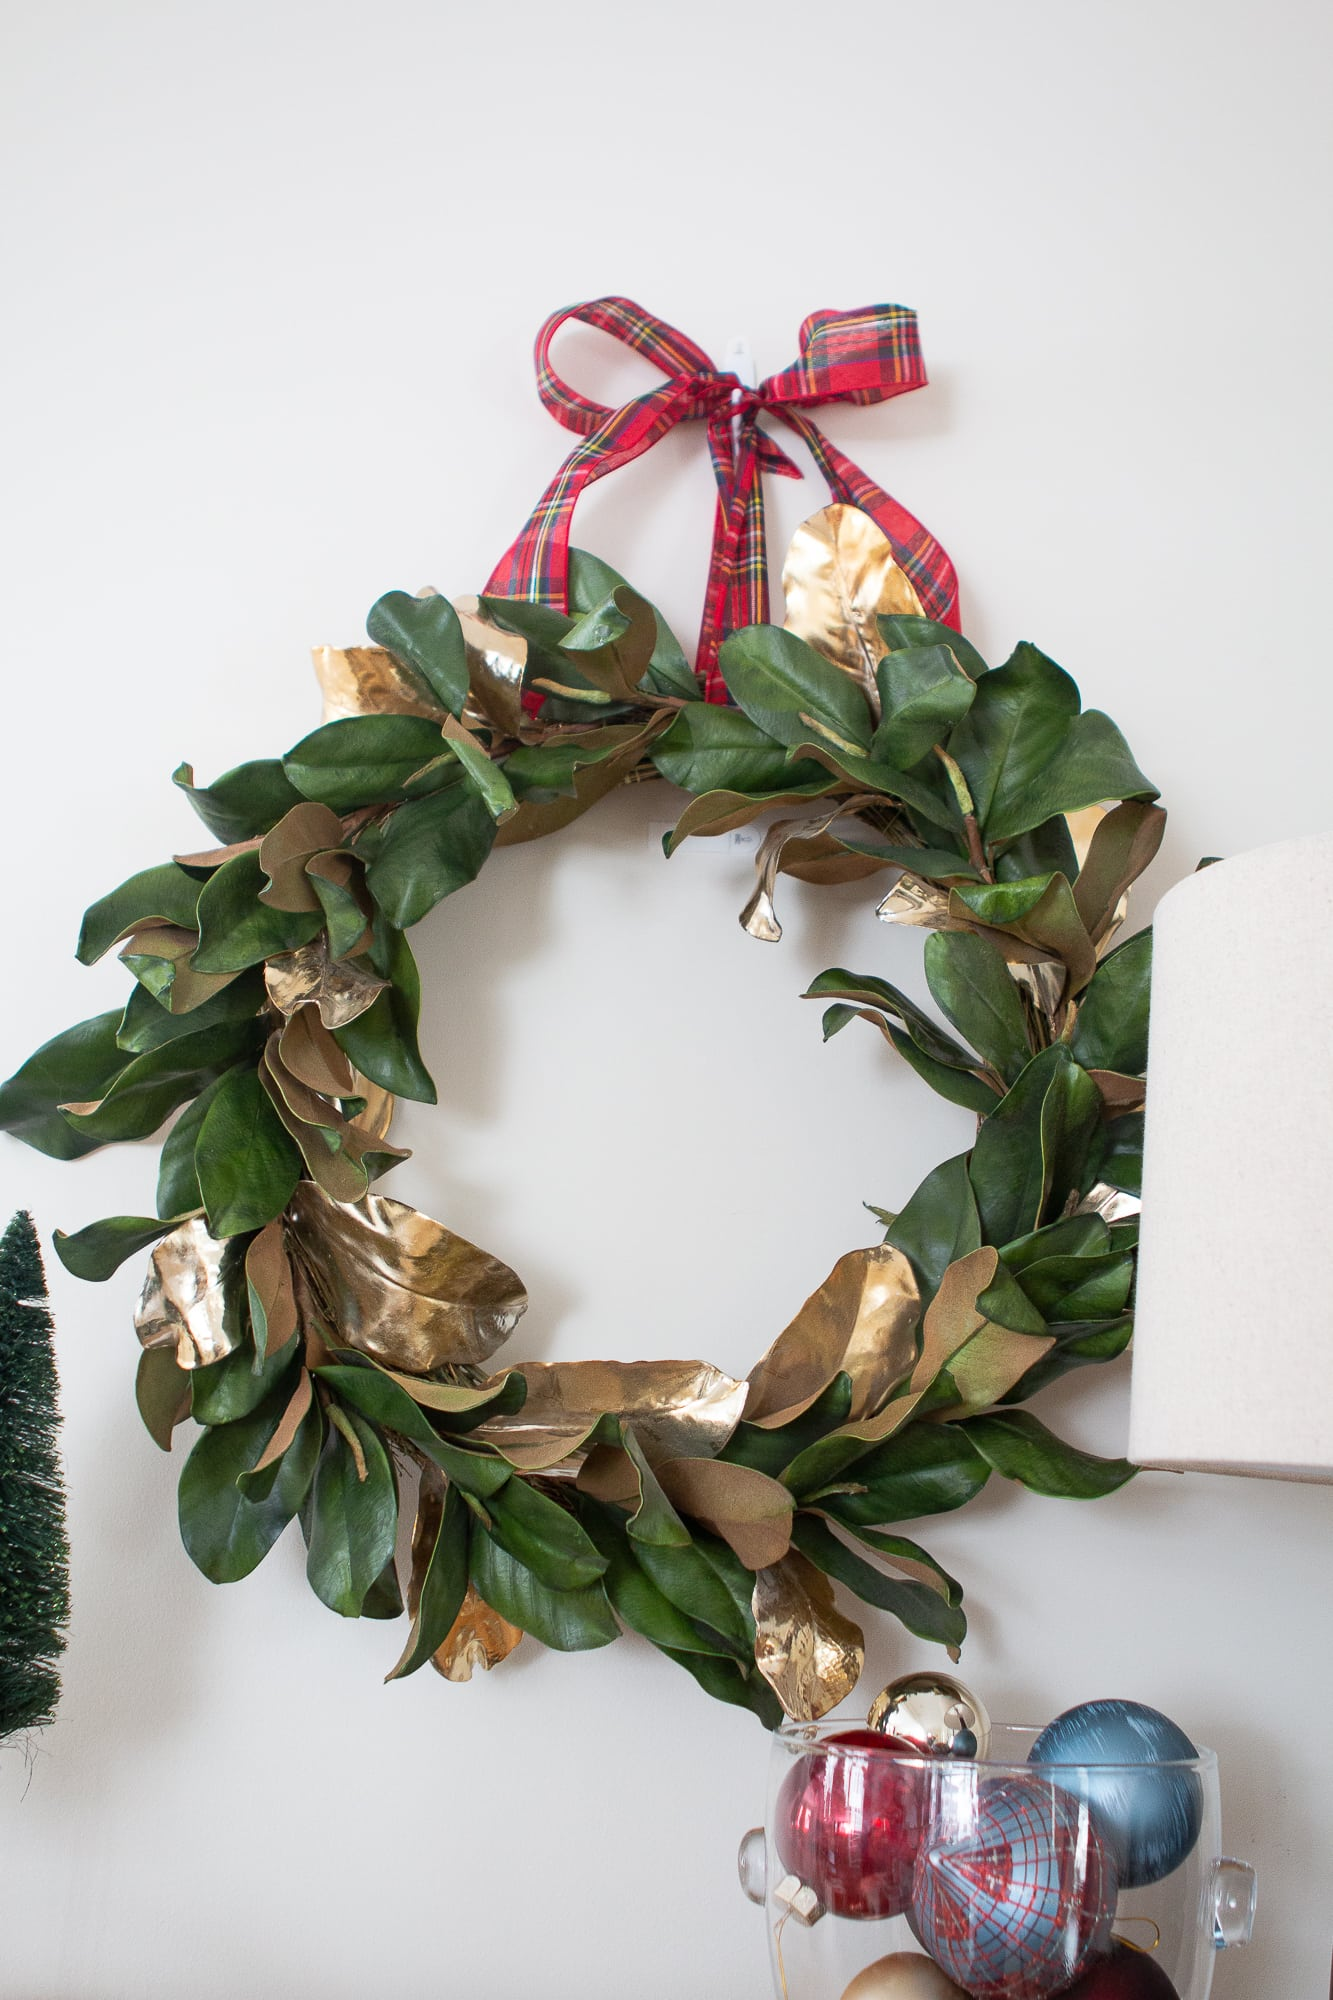 Display a wreath over your console in your holiday entry